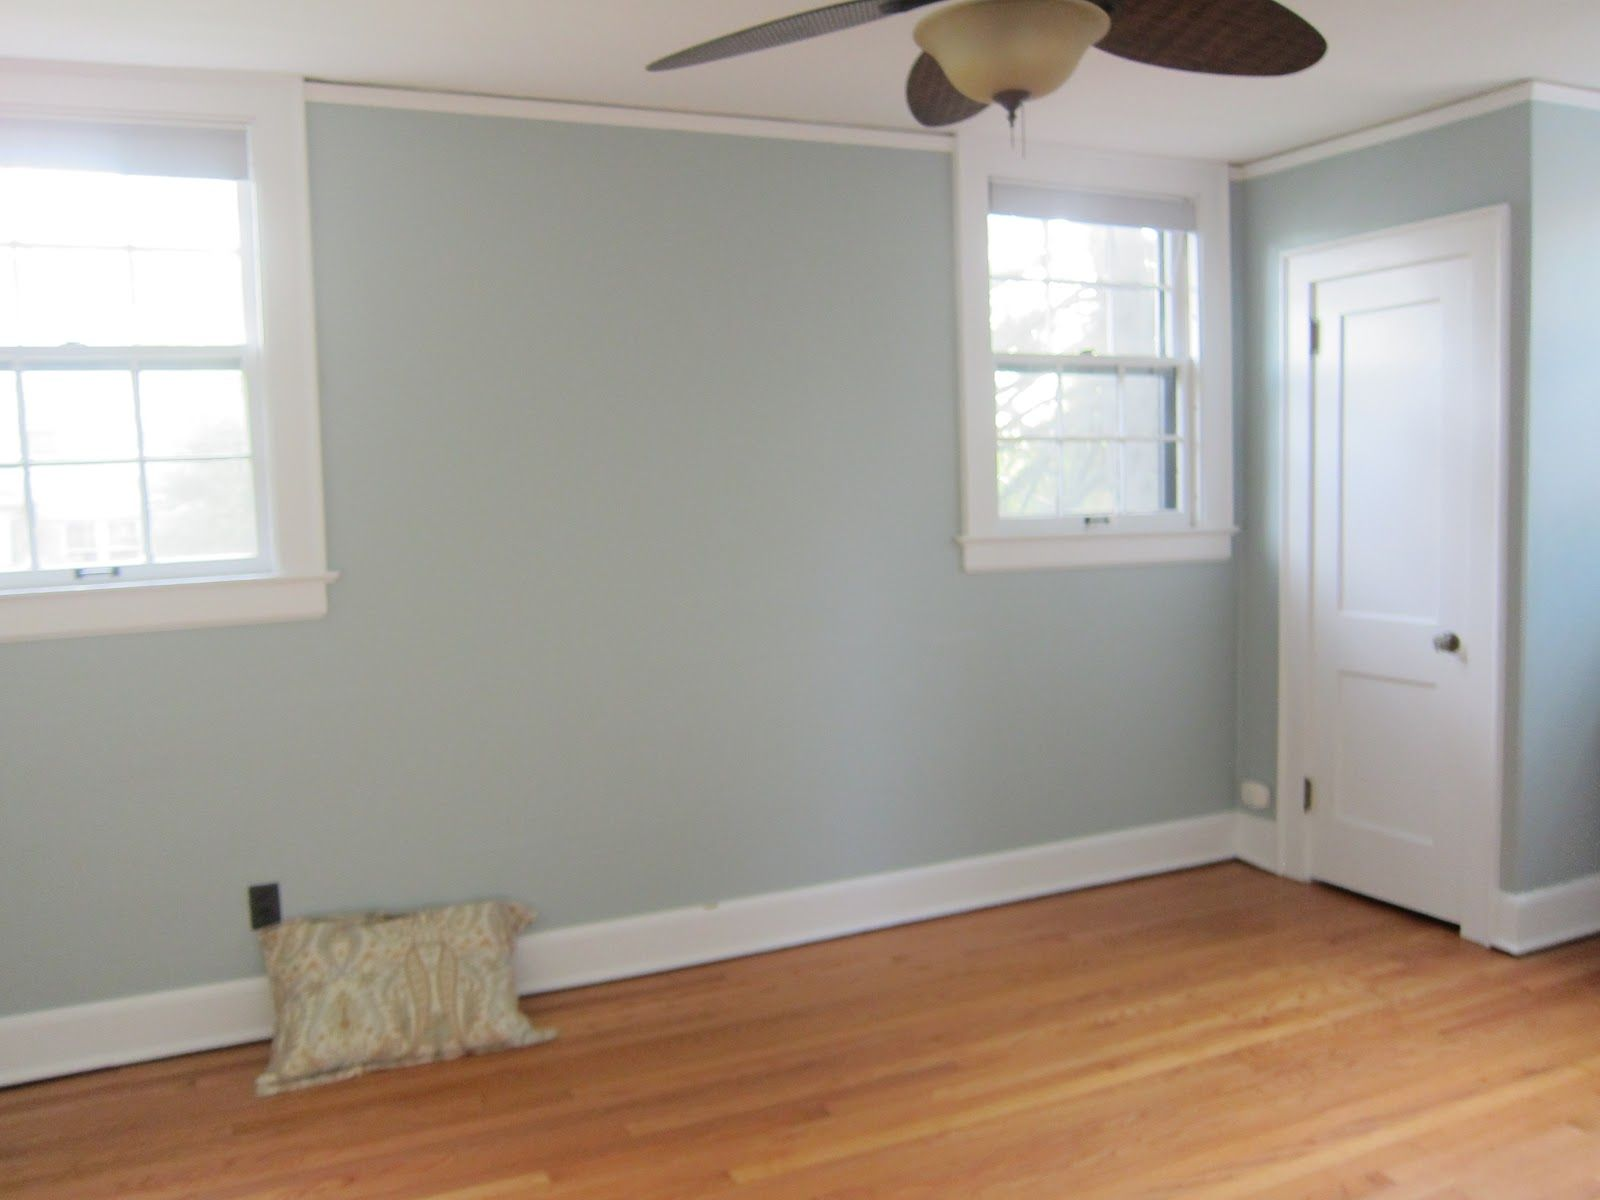 Nothing But Blue Skies Master Bath Before And After: Behr Rocky Mountain Sky - Master Bedroom